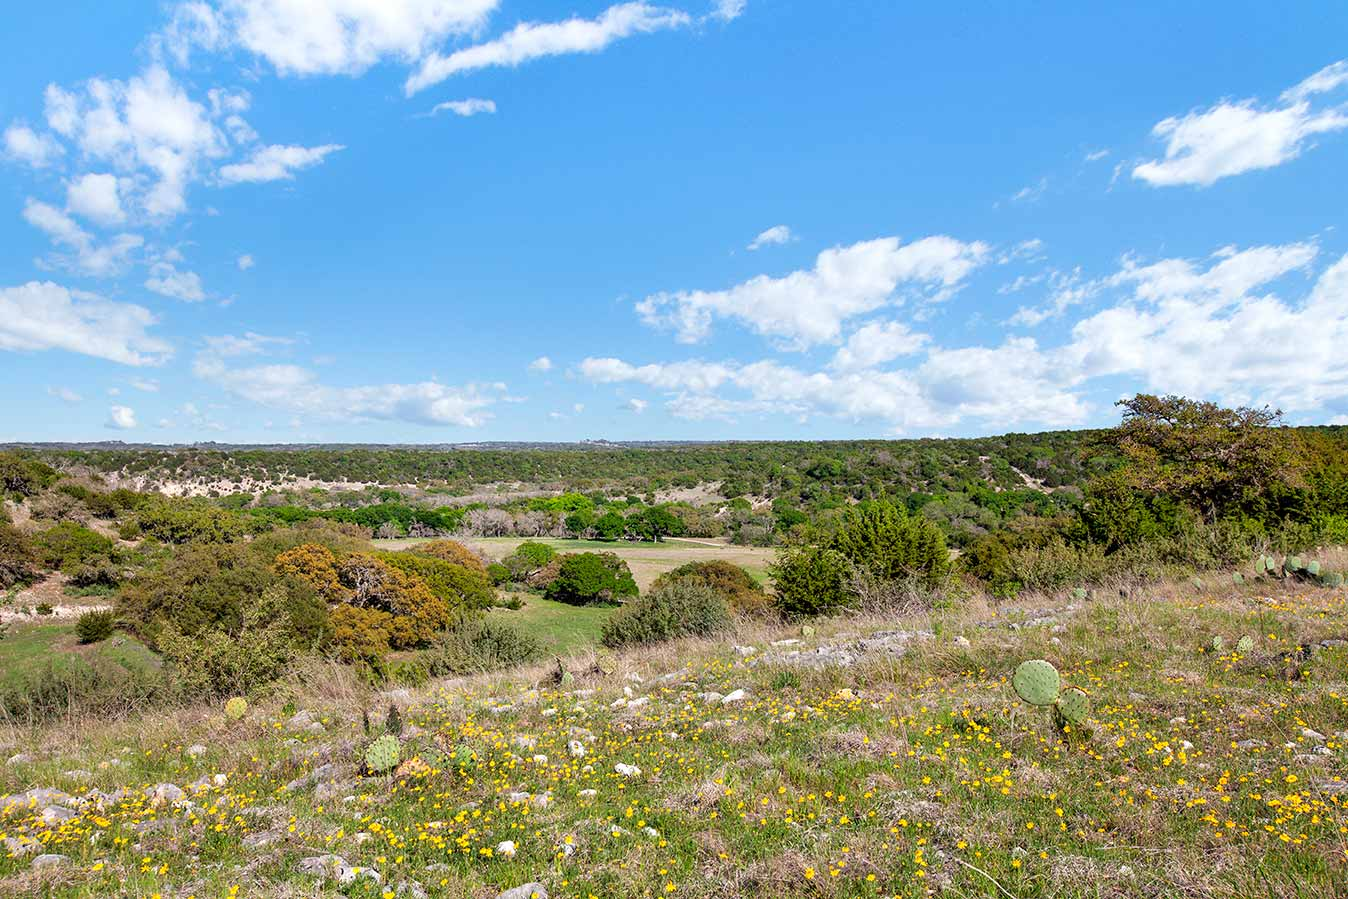 fredericksburg-realty-squaw-creek-ranch-real-estate-land-for-sale-home-house-historic-30.jpg